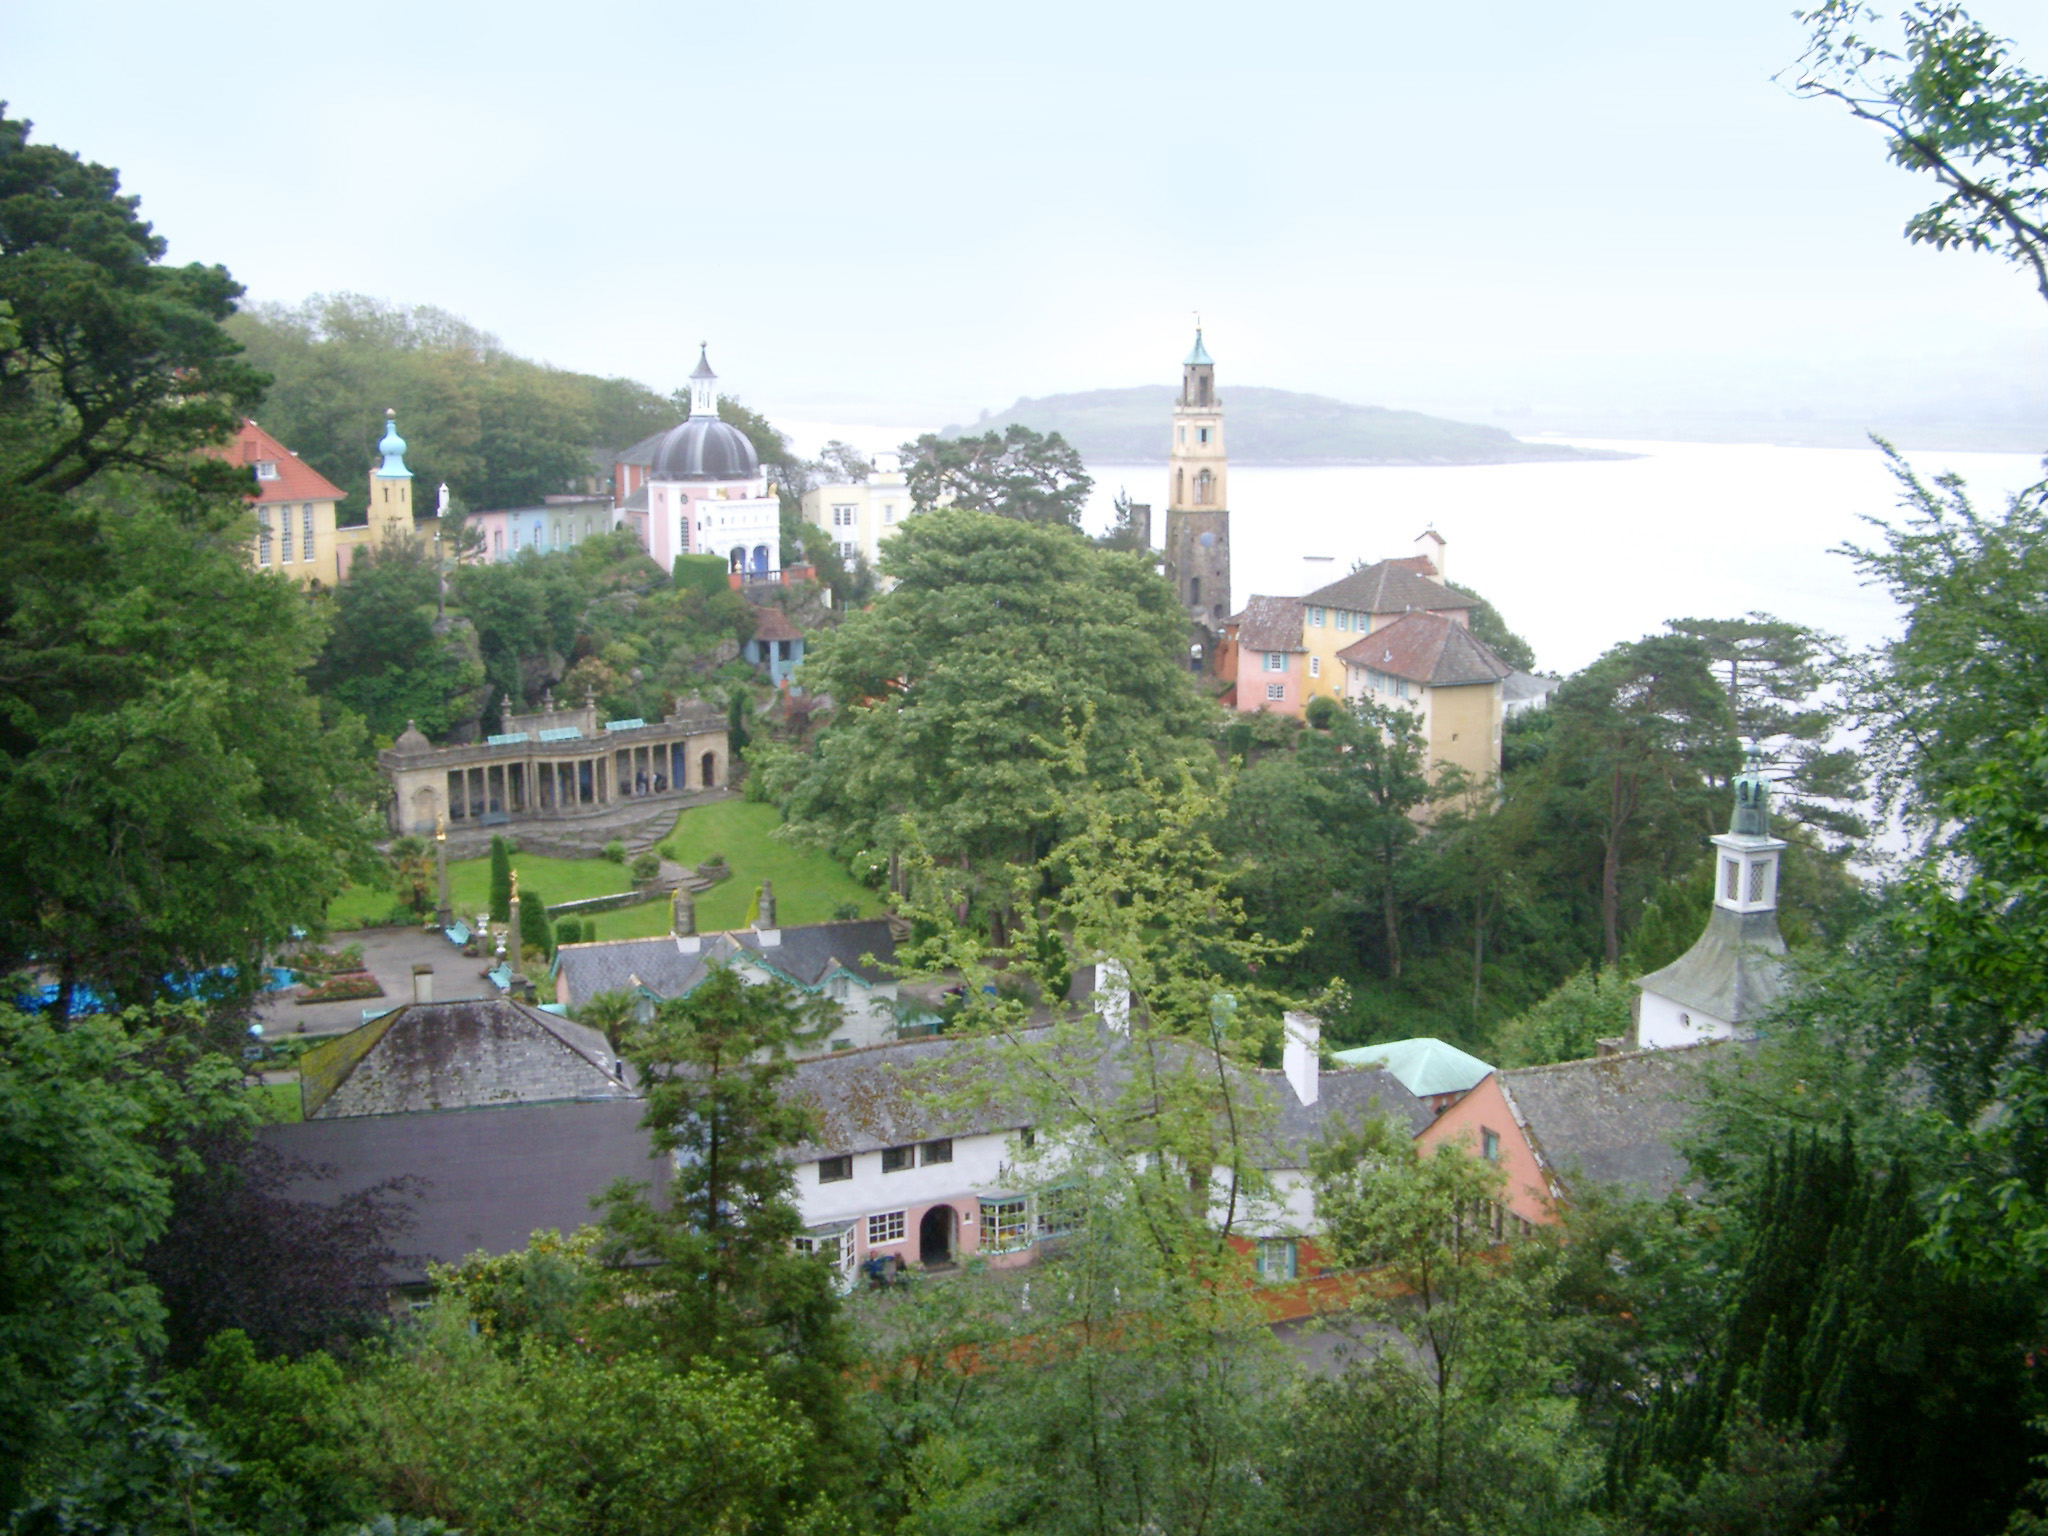 Scenic coastal view of Portmeirion, Gwynedd, Wales, a popular tourist village modelled on an Italian town designed built by Sir Clough Williams-Ellis nestling in lush greenery